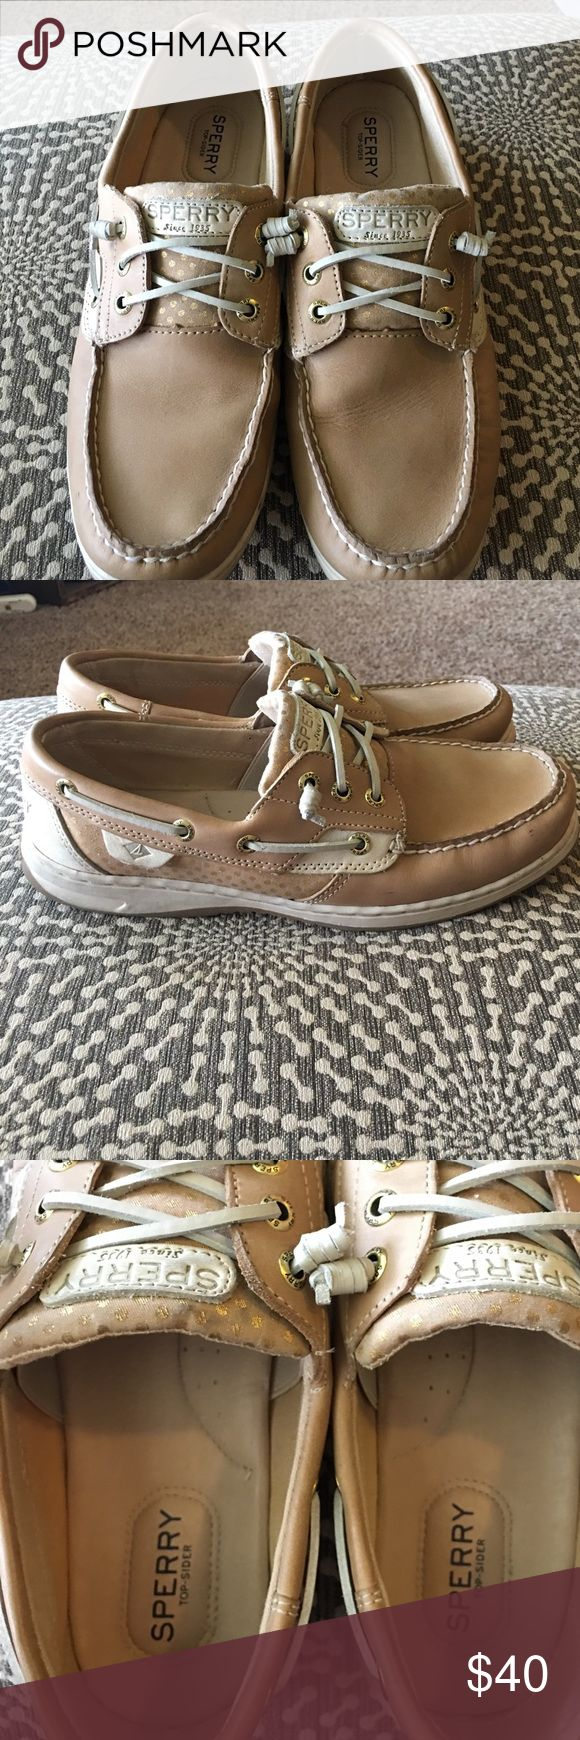 Ladies Sperry Topsiders, Size 9 These are so cute and comfy!! I have worn them, but show no big signs of wear and tear. I took an up close pic of the heals so you could see what I mean. Tons of life left. These are this years style. I have to slim down the closet! Smoke/pet free! *No box* Sperry Top-Sider Shoes Flats & Loafers